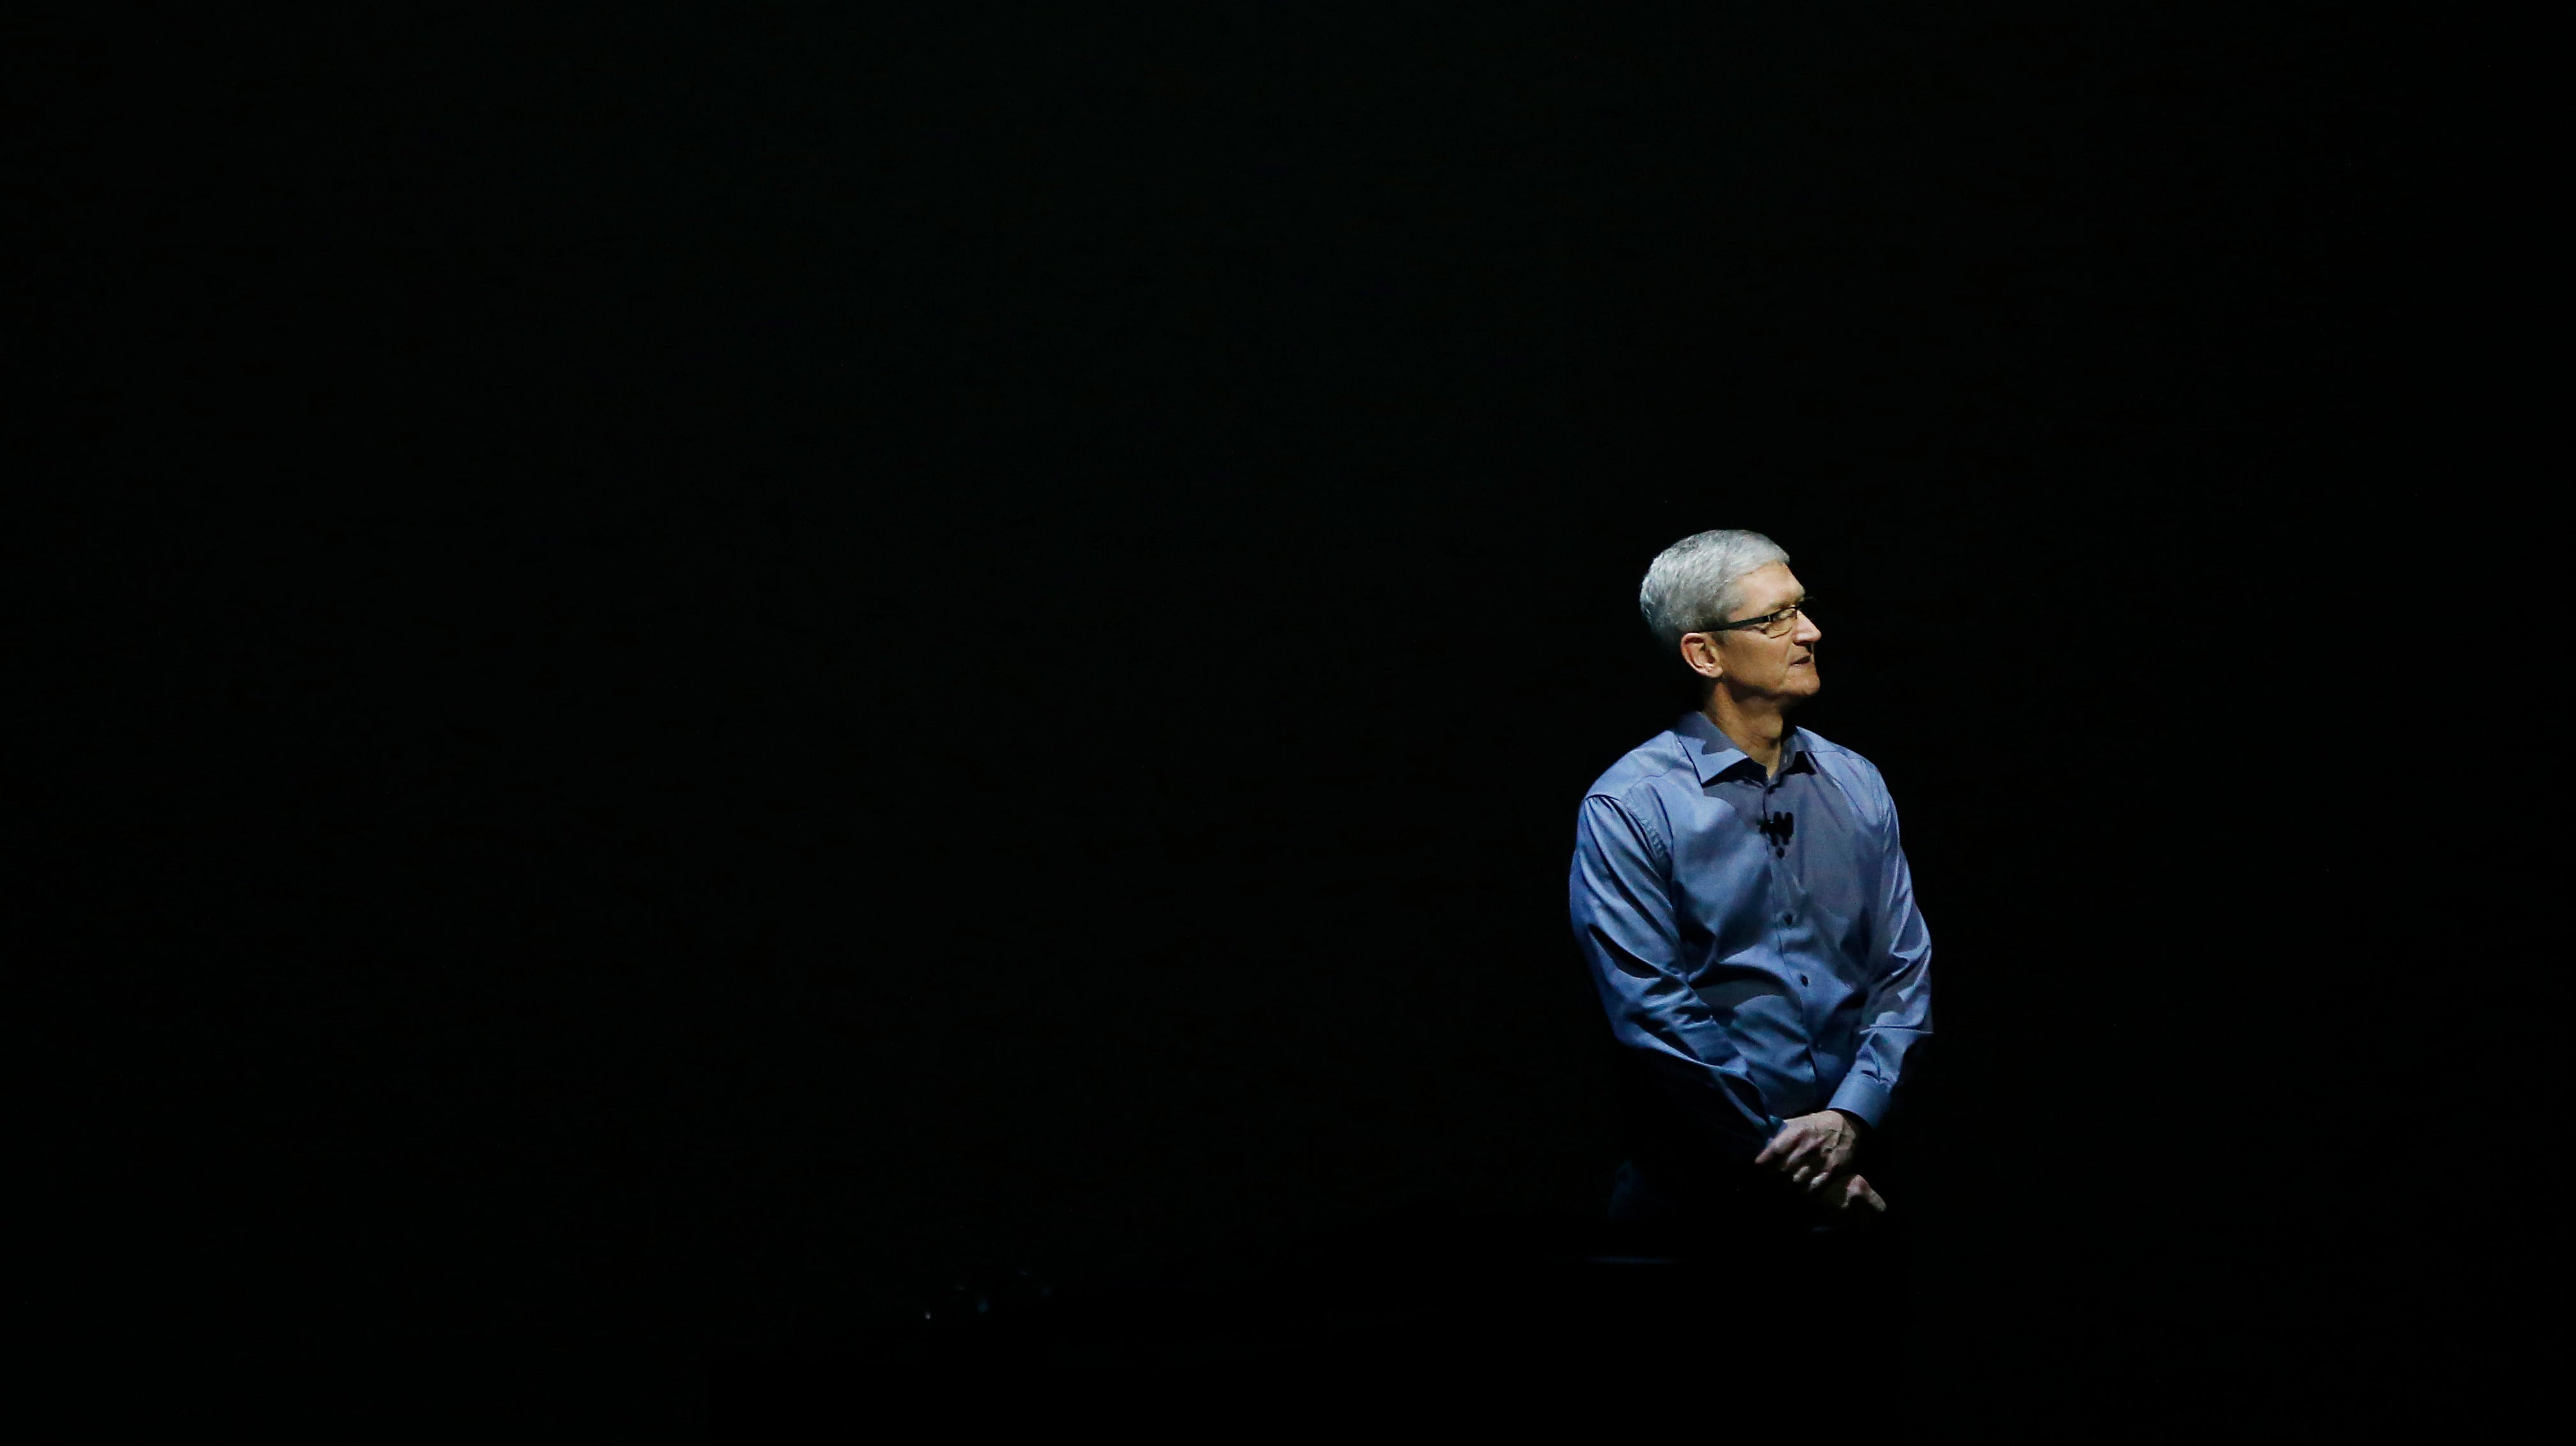 Oh No, Apple Probably Only Made $120 Billion Last Quarter